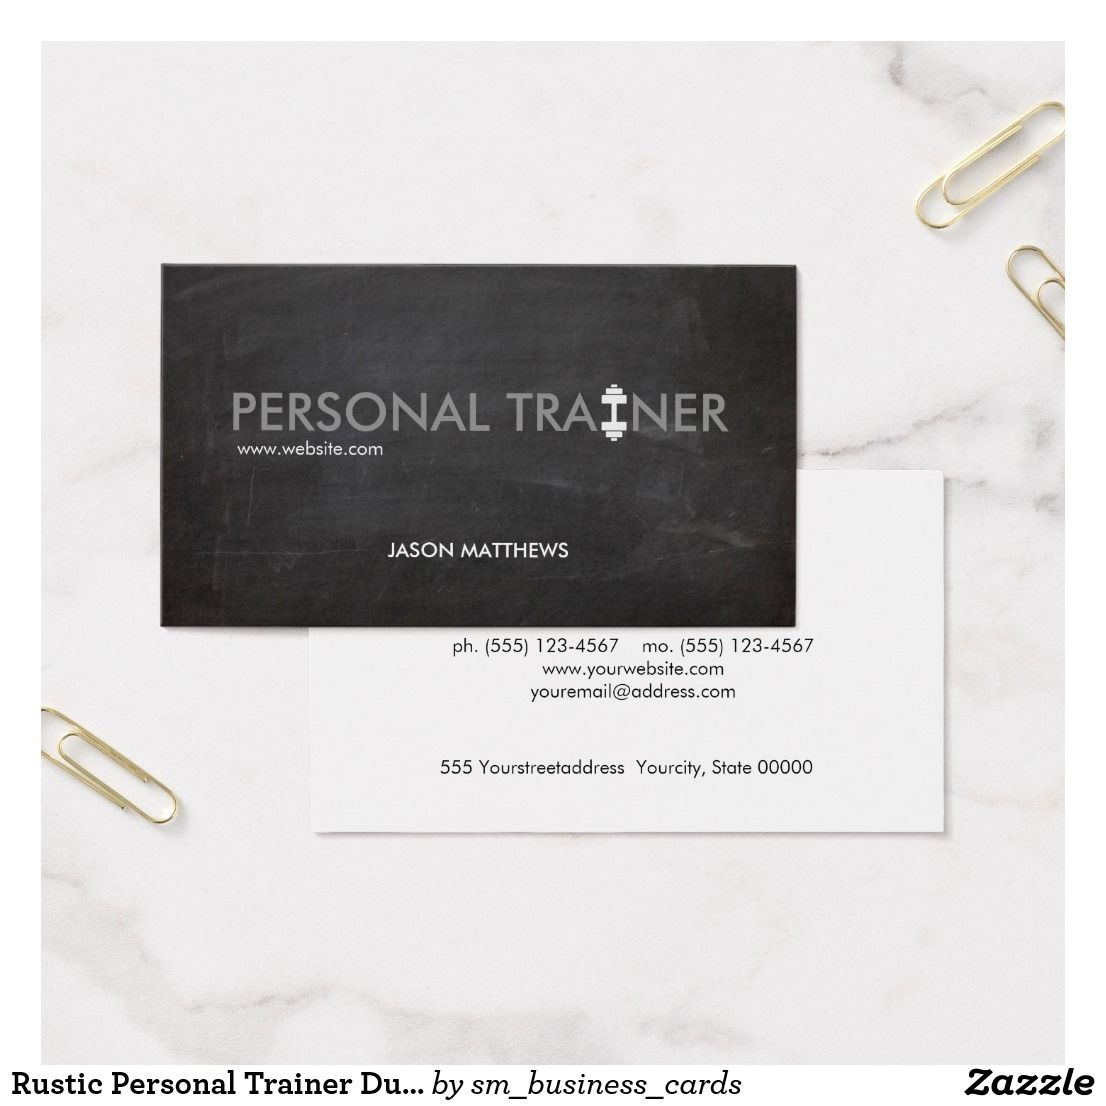 Rustic Personal Trainer Dumbbell Logo Fitness Business Card ...